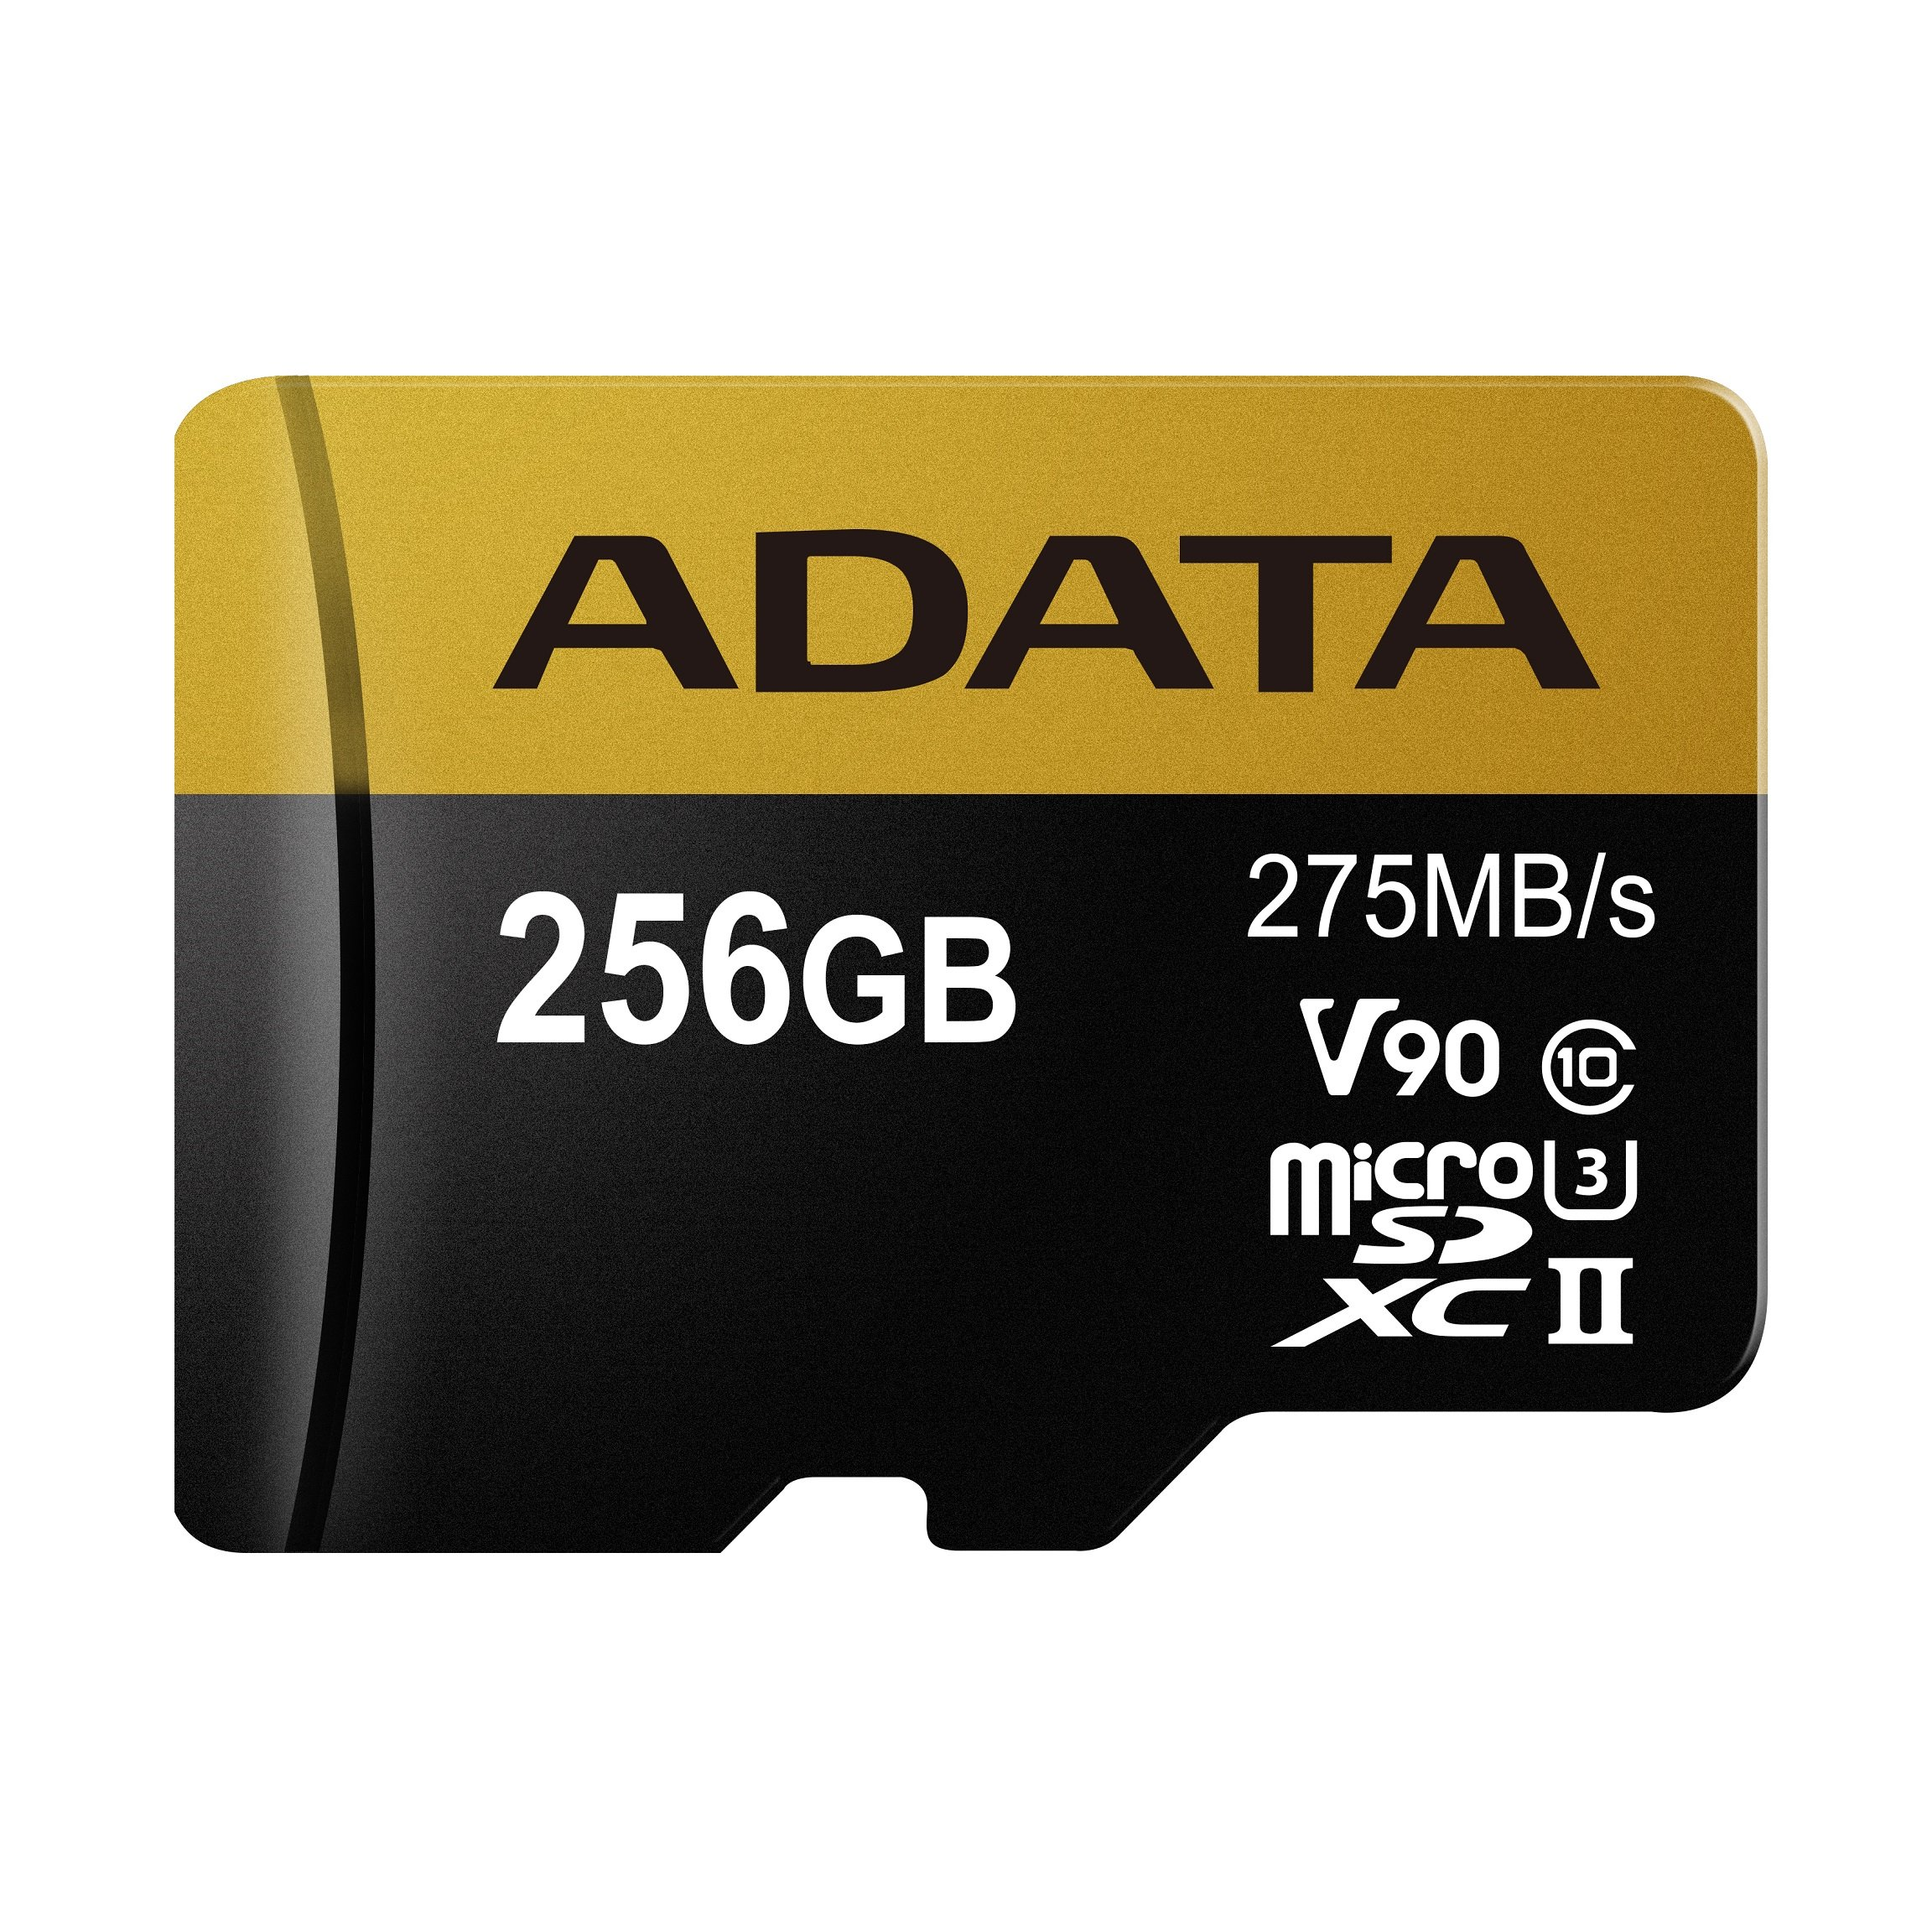 ADATA Premier ONE 256GB SDXC UHS-II U3 Class10 V90 3D NAND 4K 8K Ultra HD 275MB/s Micro SD Card Only (AUSDX256GUII3CL10-C)